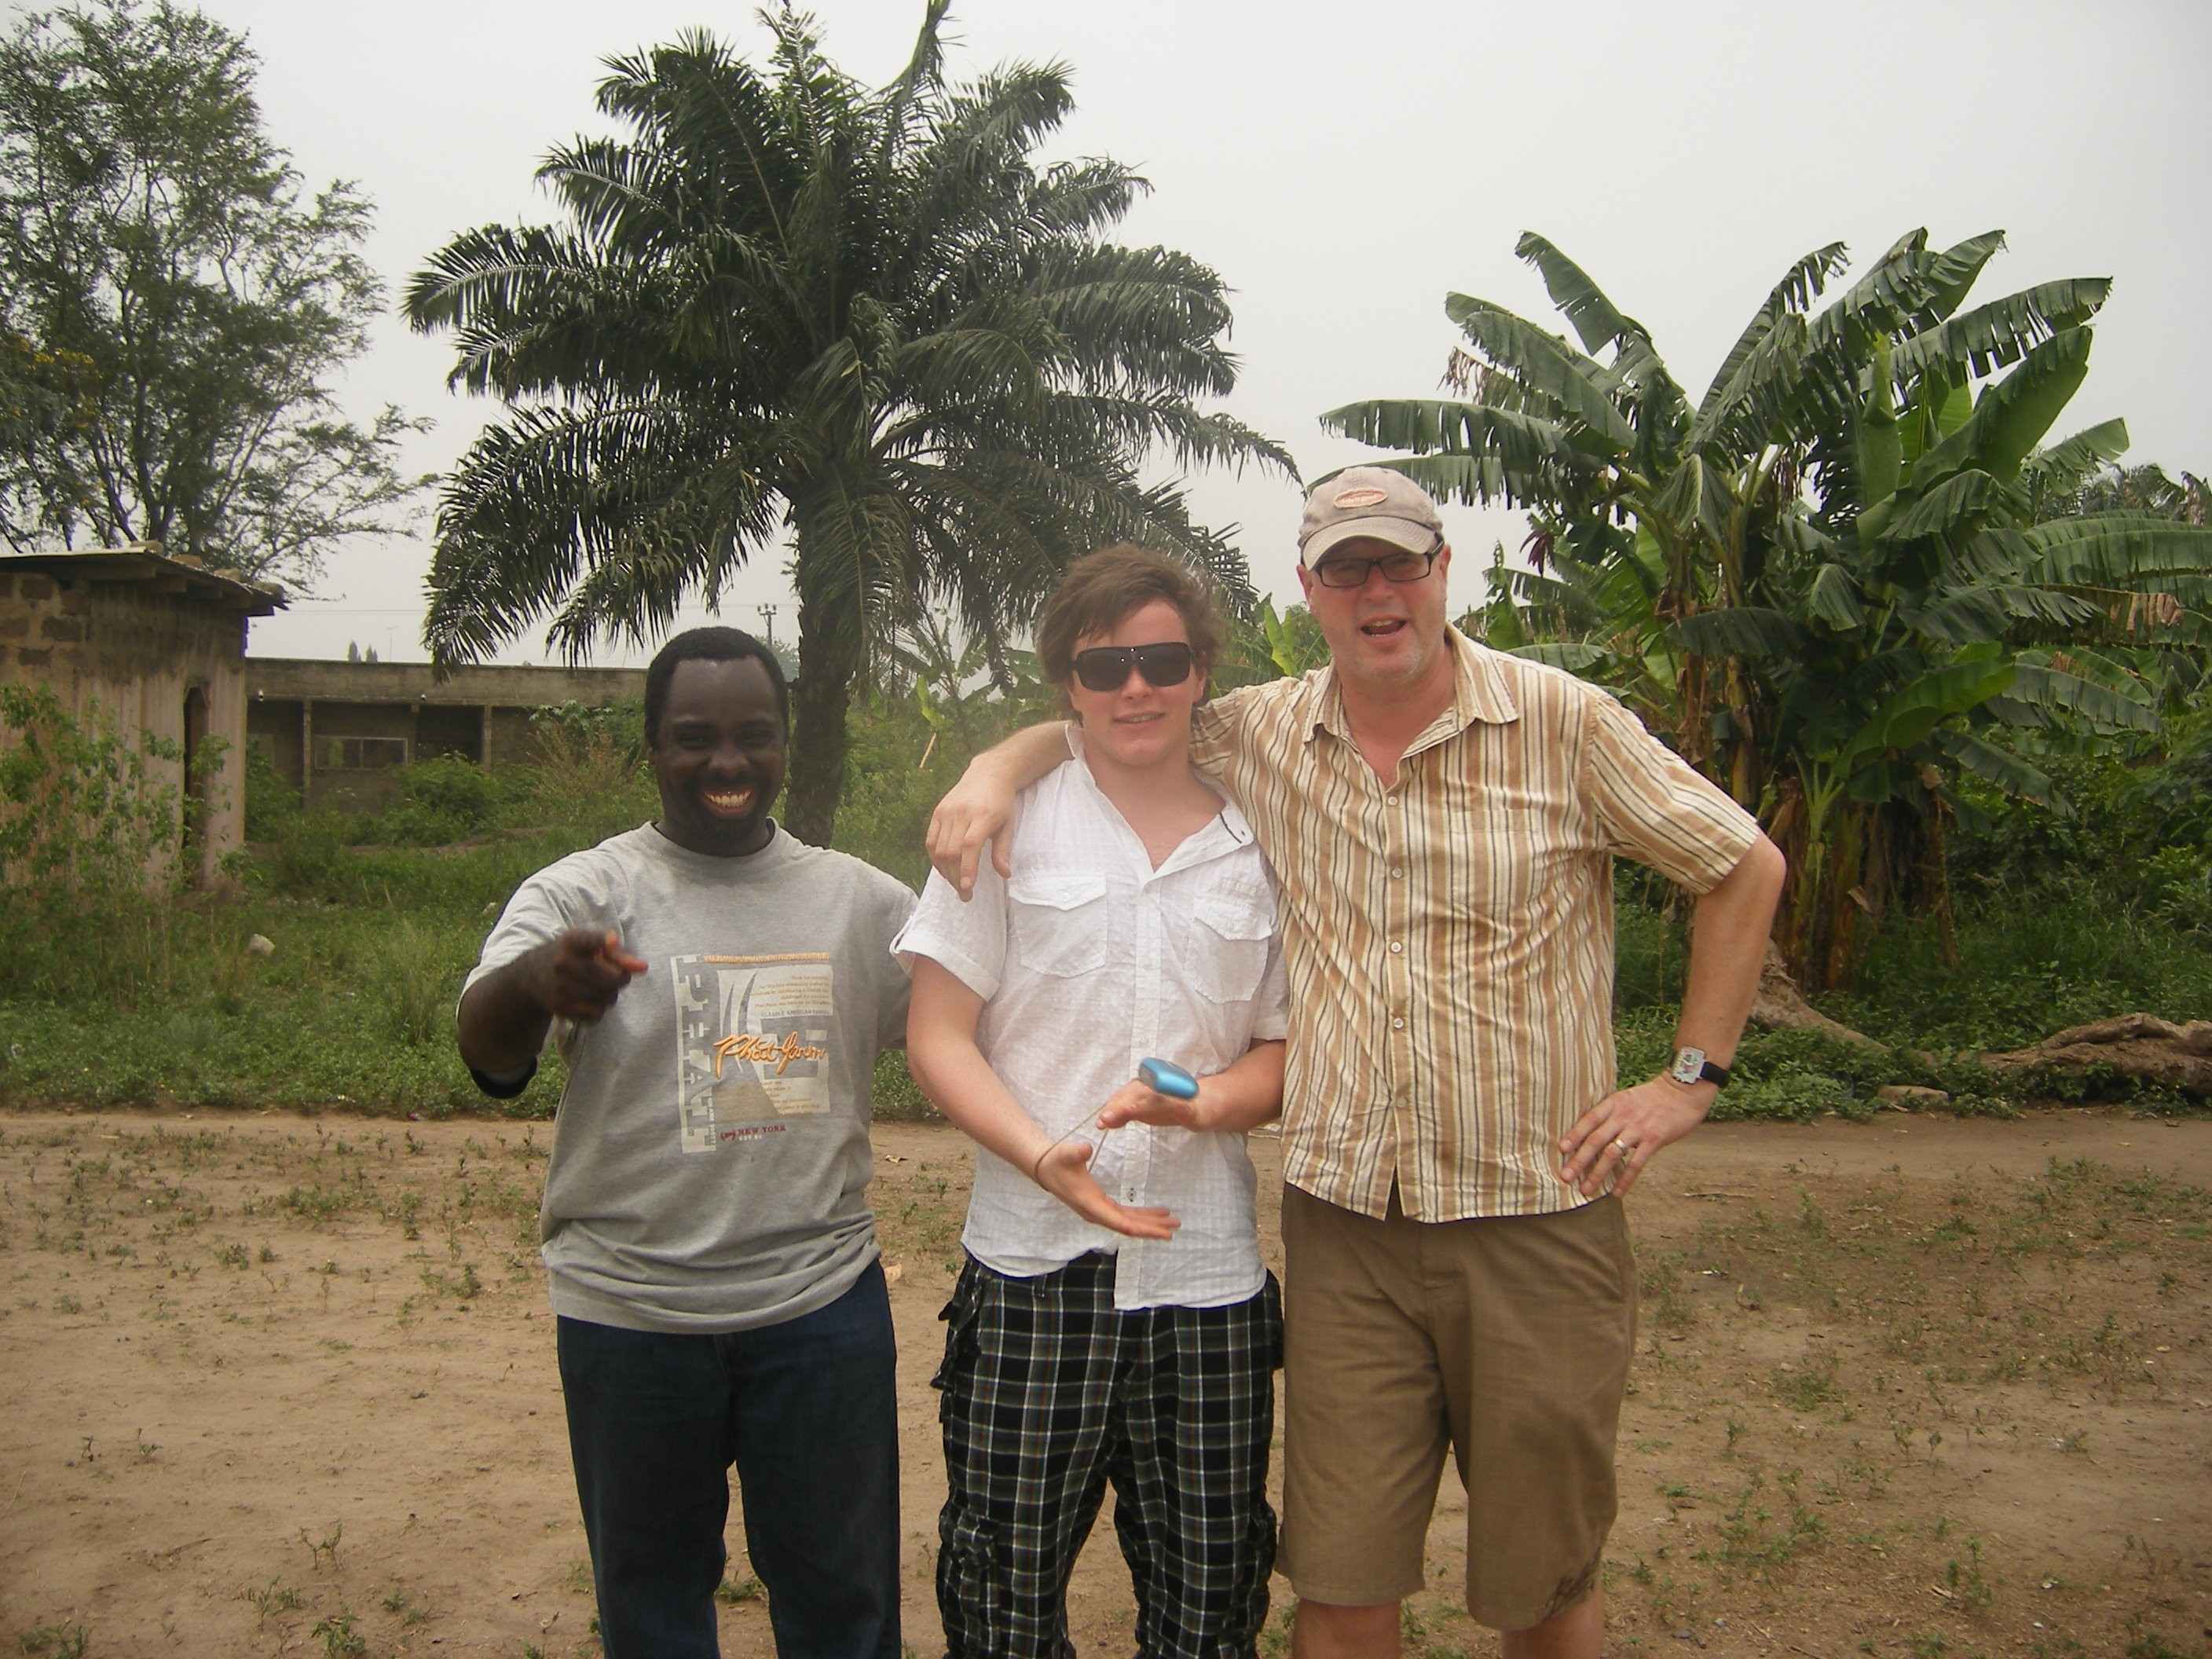 Chris and his son on their visit to Ghana in 2010